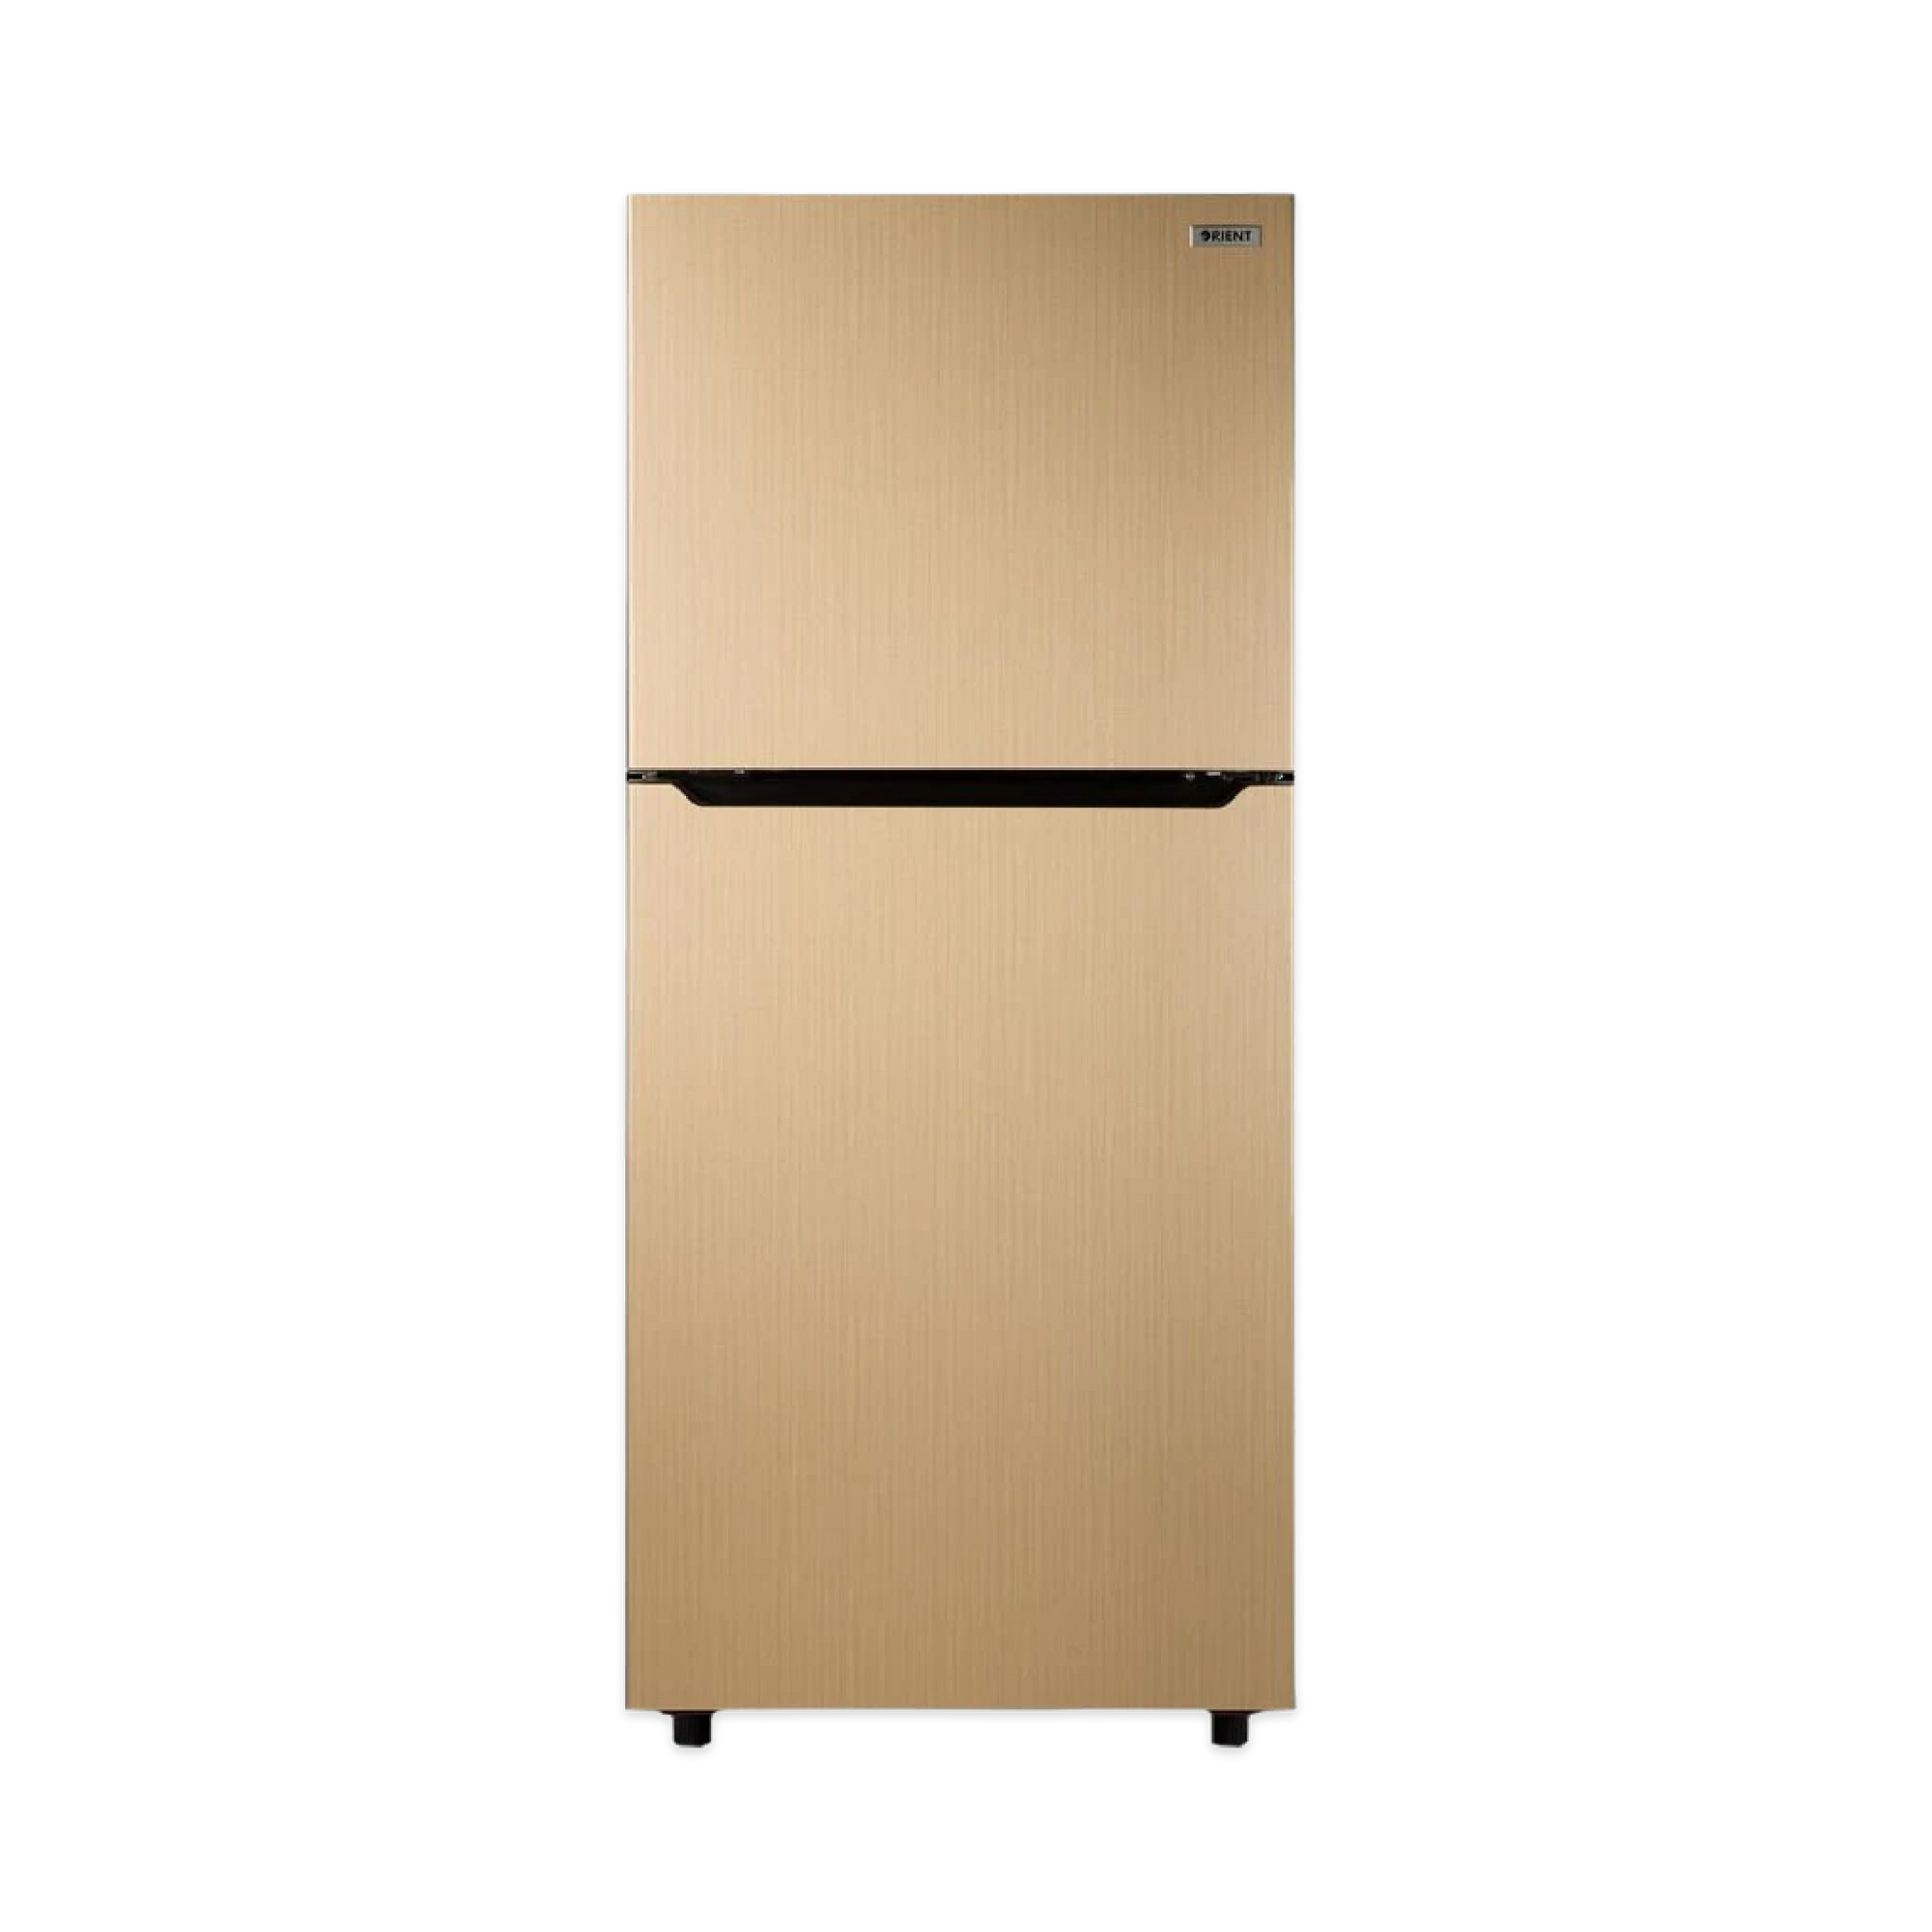 Grand 475 Liters Refrigerators